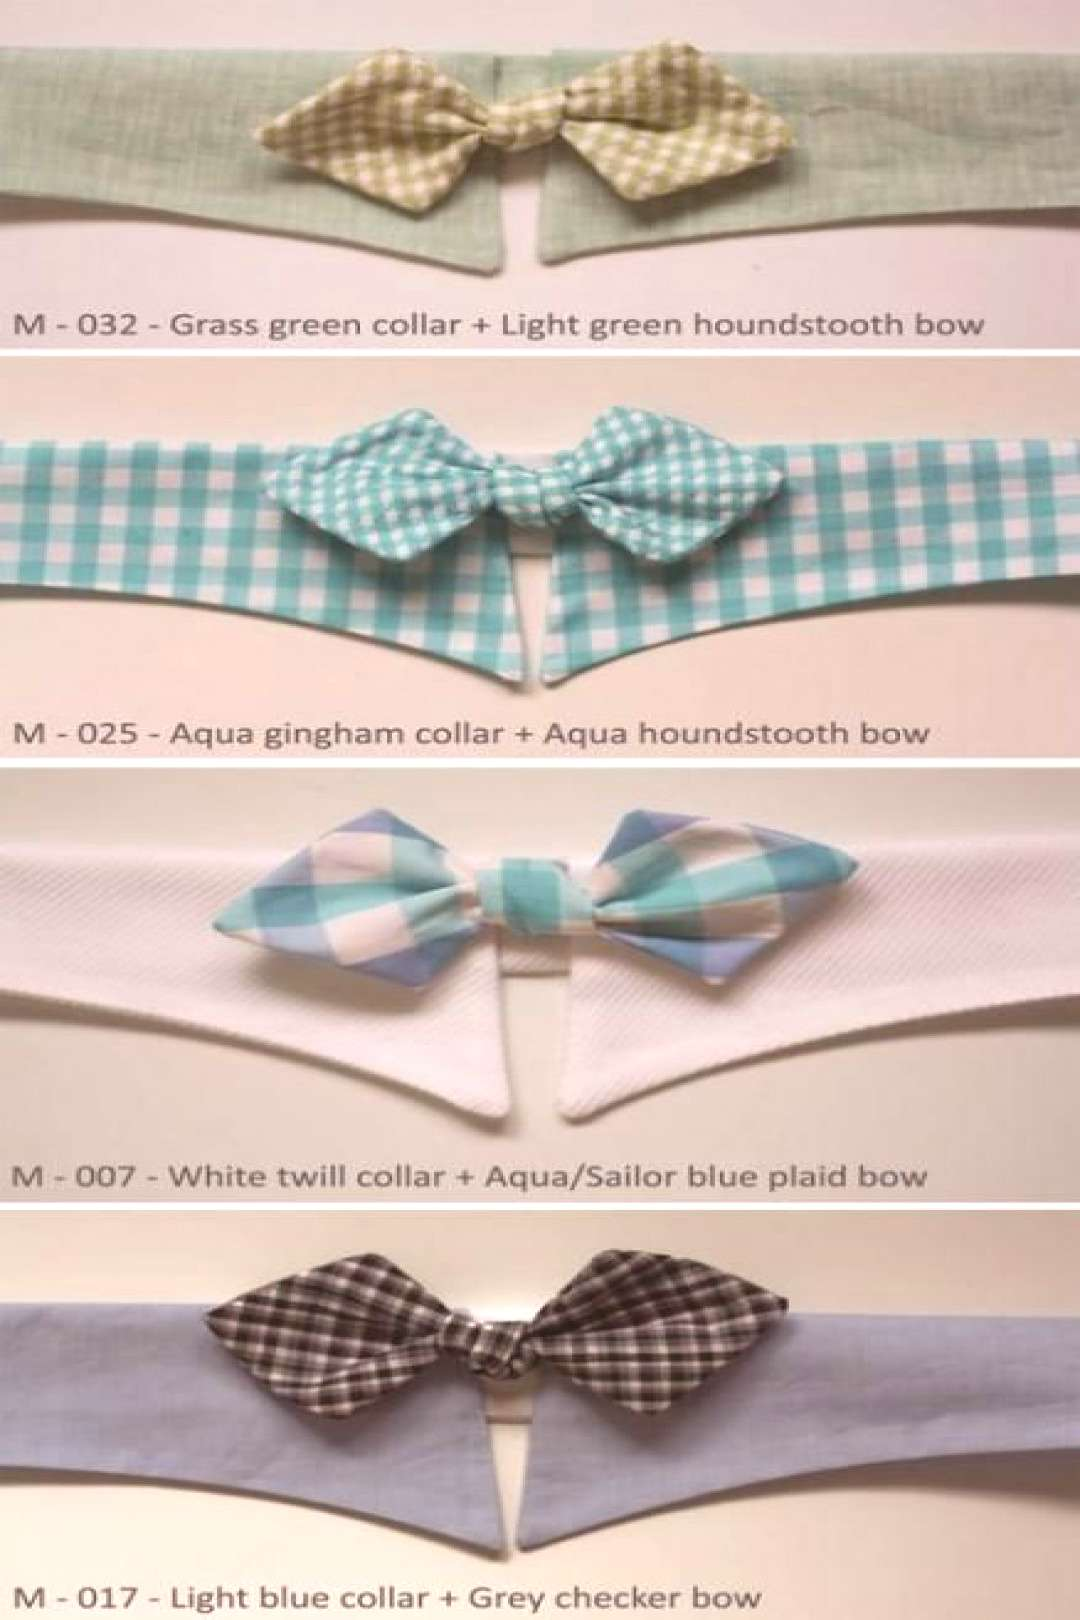 Diy Dog Clothes From Old Shirt Cats 18 Ideas For 2019 Diy Dog Clothes From Old Shirt Cats 18 Ideas